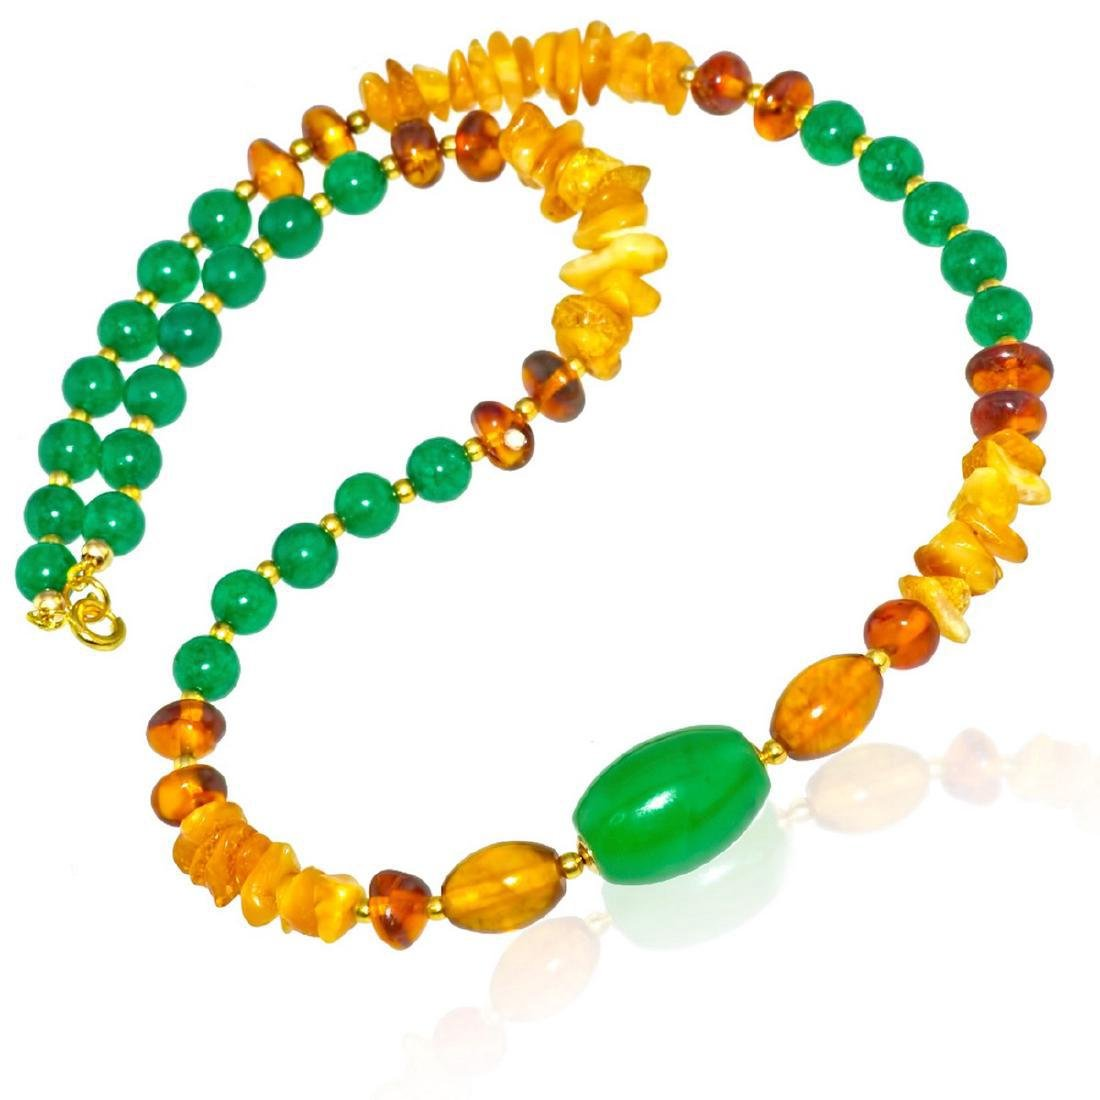 Vintage Style Imperal Jade Baltic Amber Necklace - 6